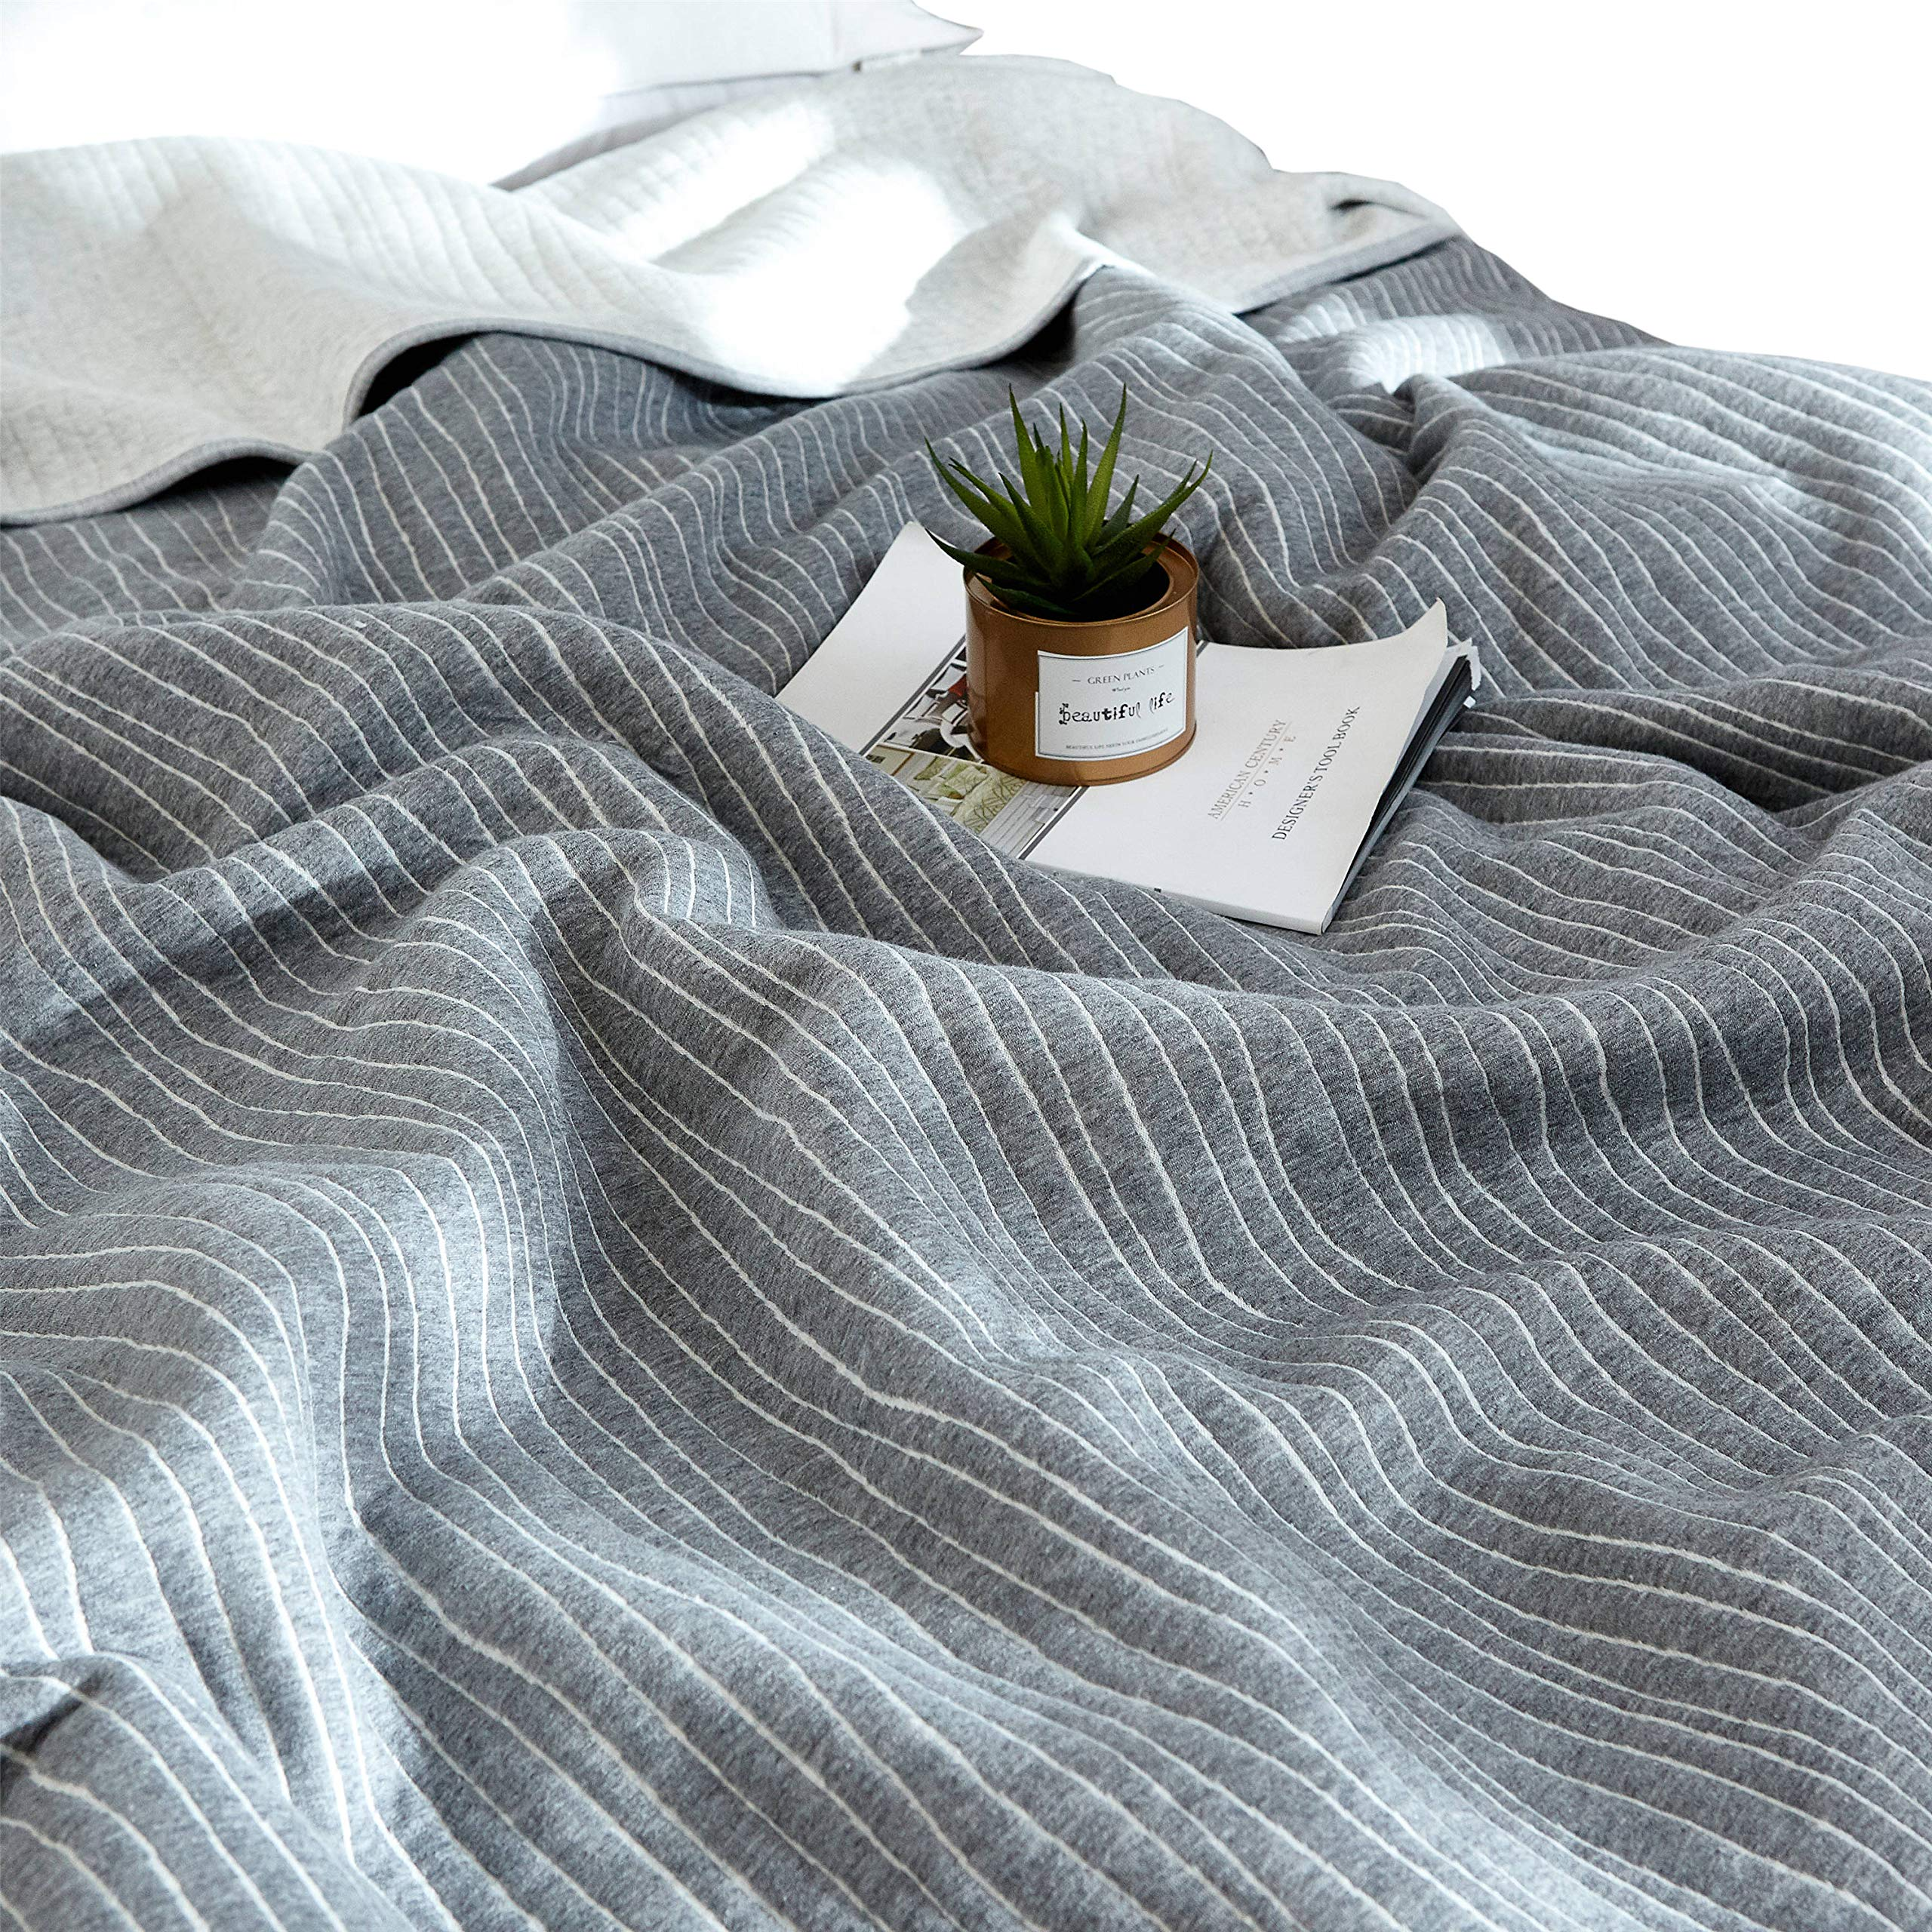 J-pinno Grey Stripes Jersey Cotton Cozy Quilt Reversible Throw Blanket Bedspread Bedding Coverlet for Kids Teen Boys Bed Gift (2, Twin 59'' X 78'')